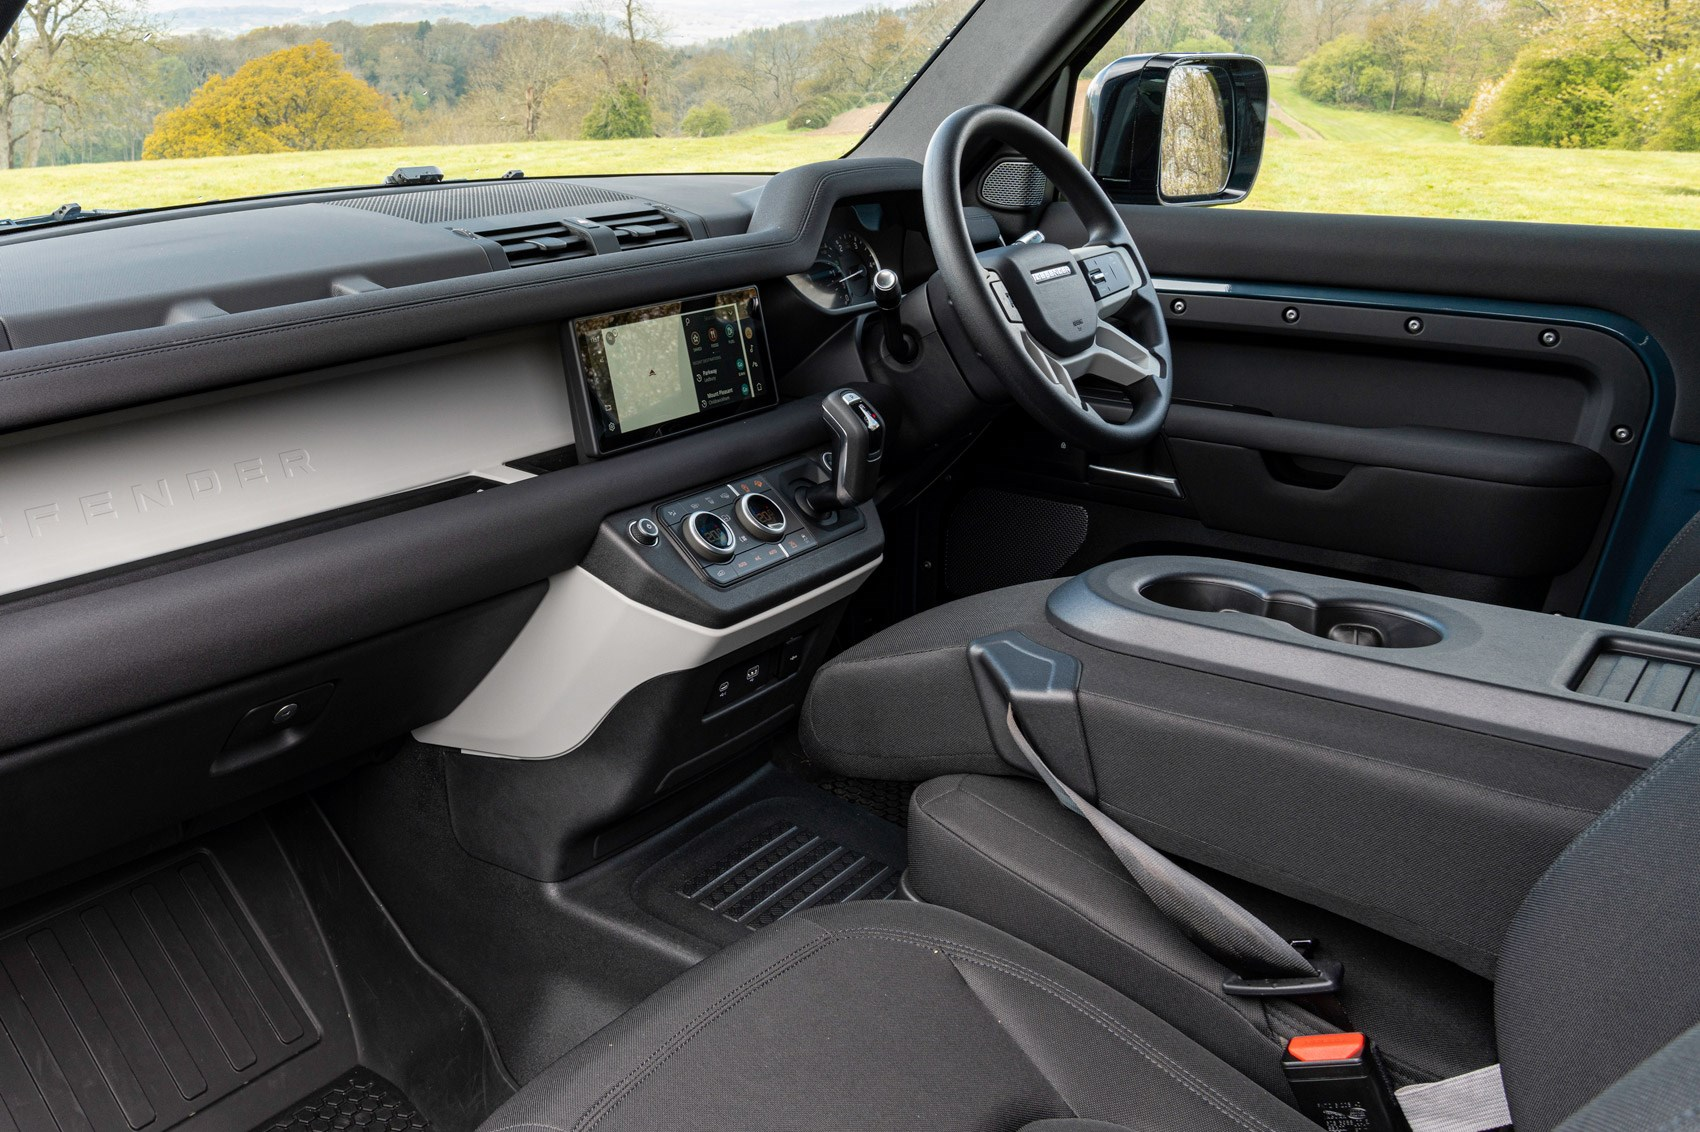 Land Rover Defender Hard Top review - commercial 4x4 - dashboard, steering wheel, Pivi Pro infotainment touchscreen